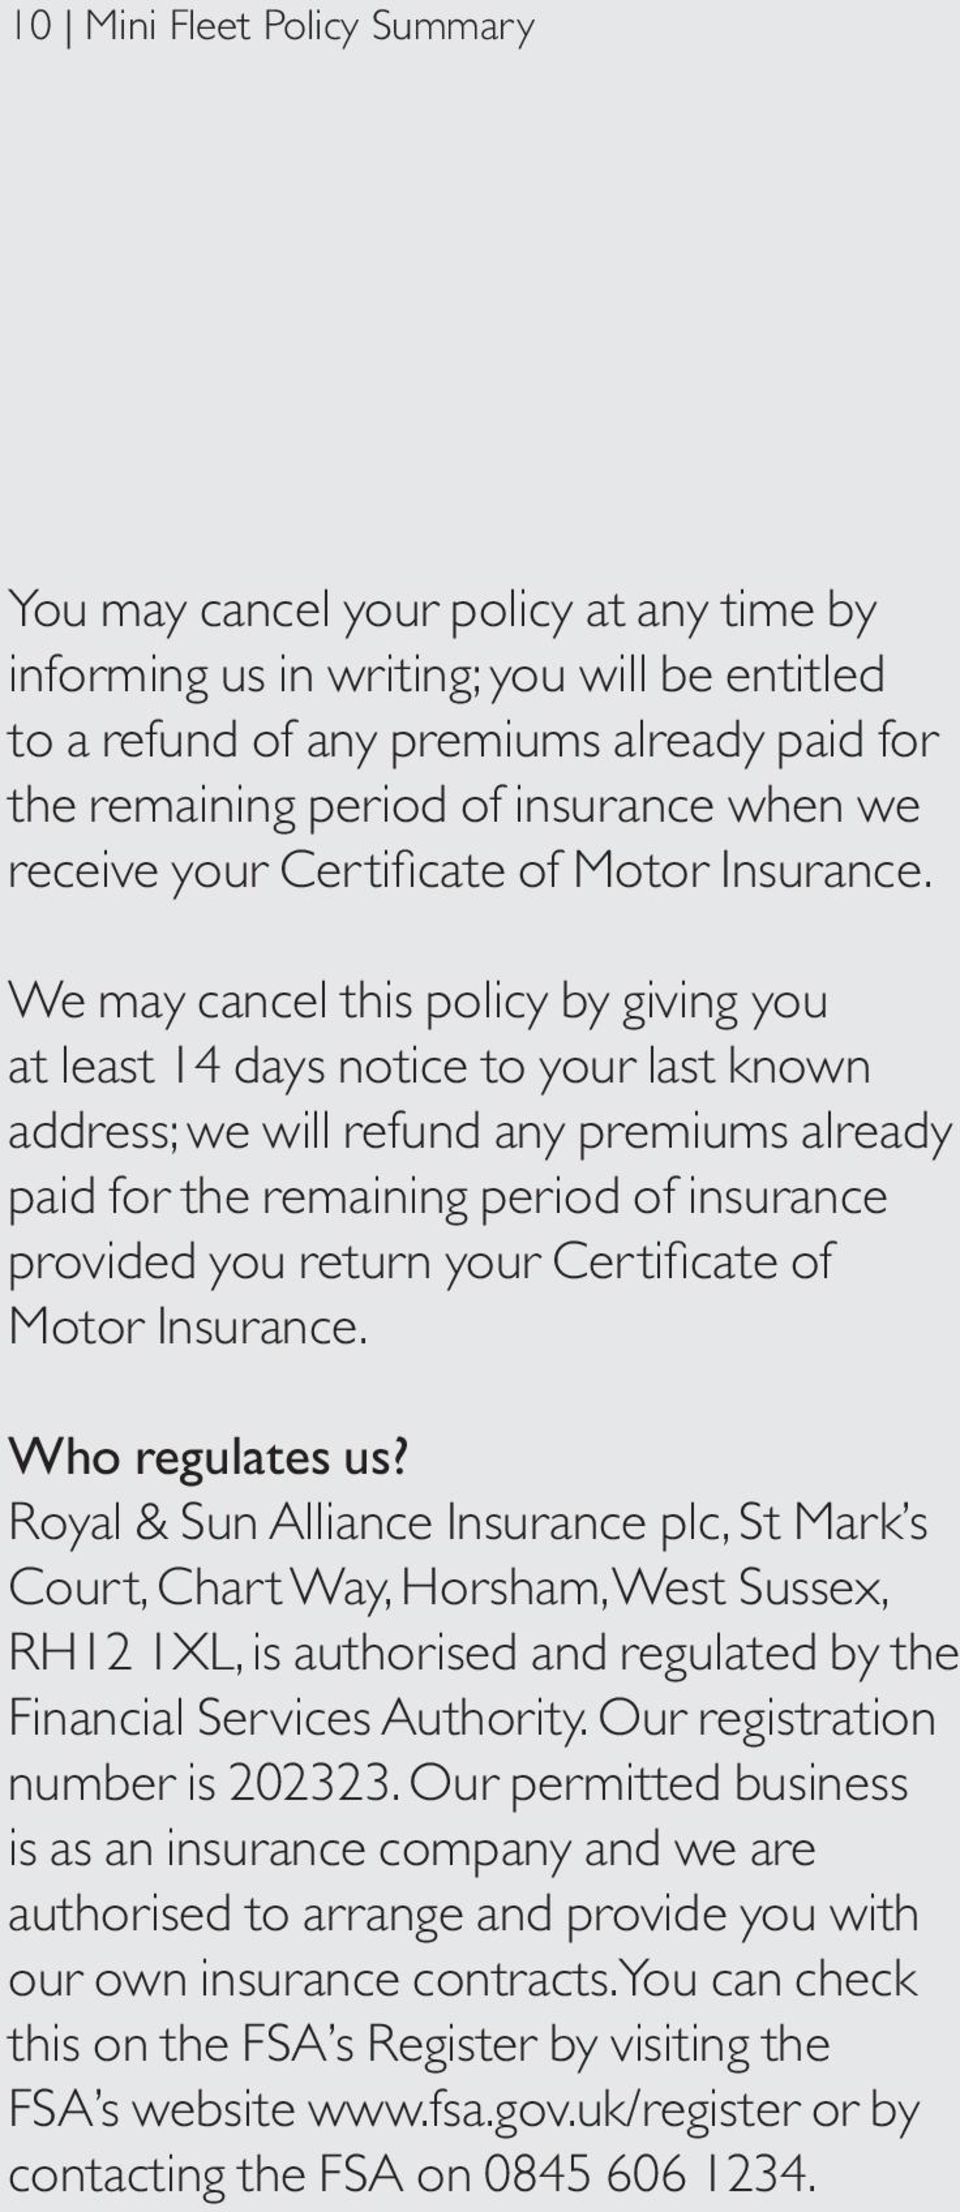 We may cancel this policy by giving you at least 14 days notice to your last known address; we will refund any premiums already paid for the remaining period of insurance provided you return your